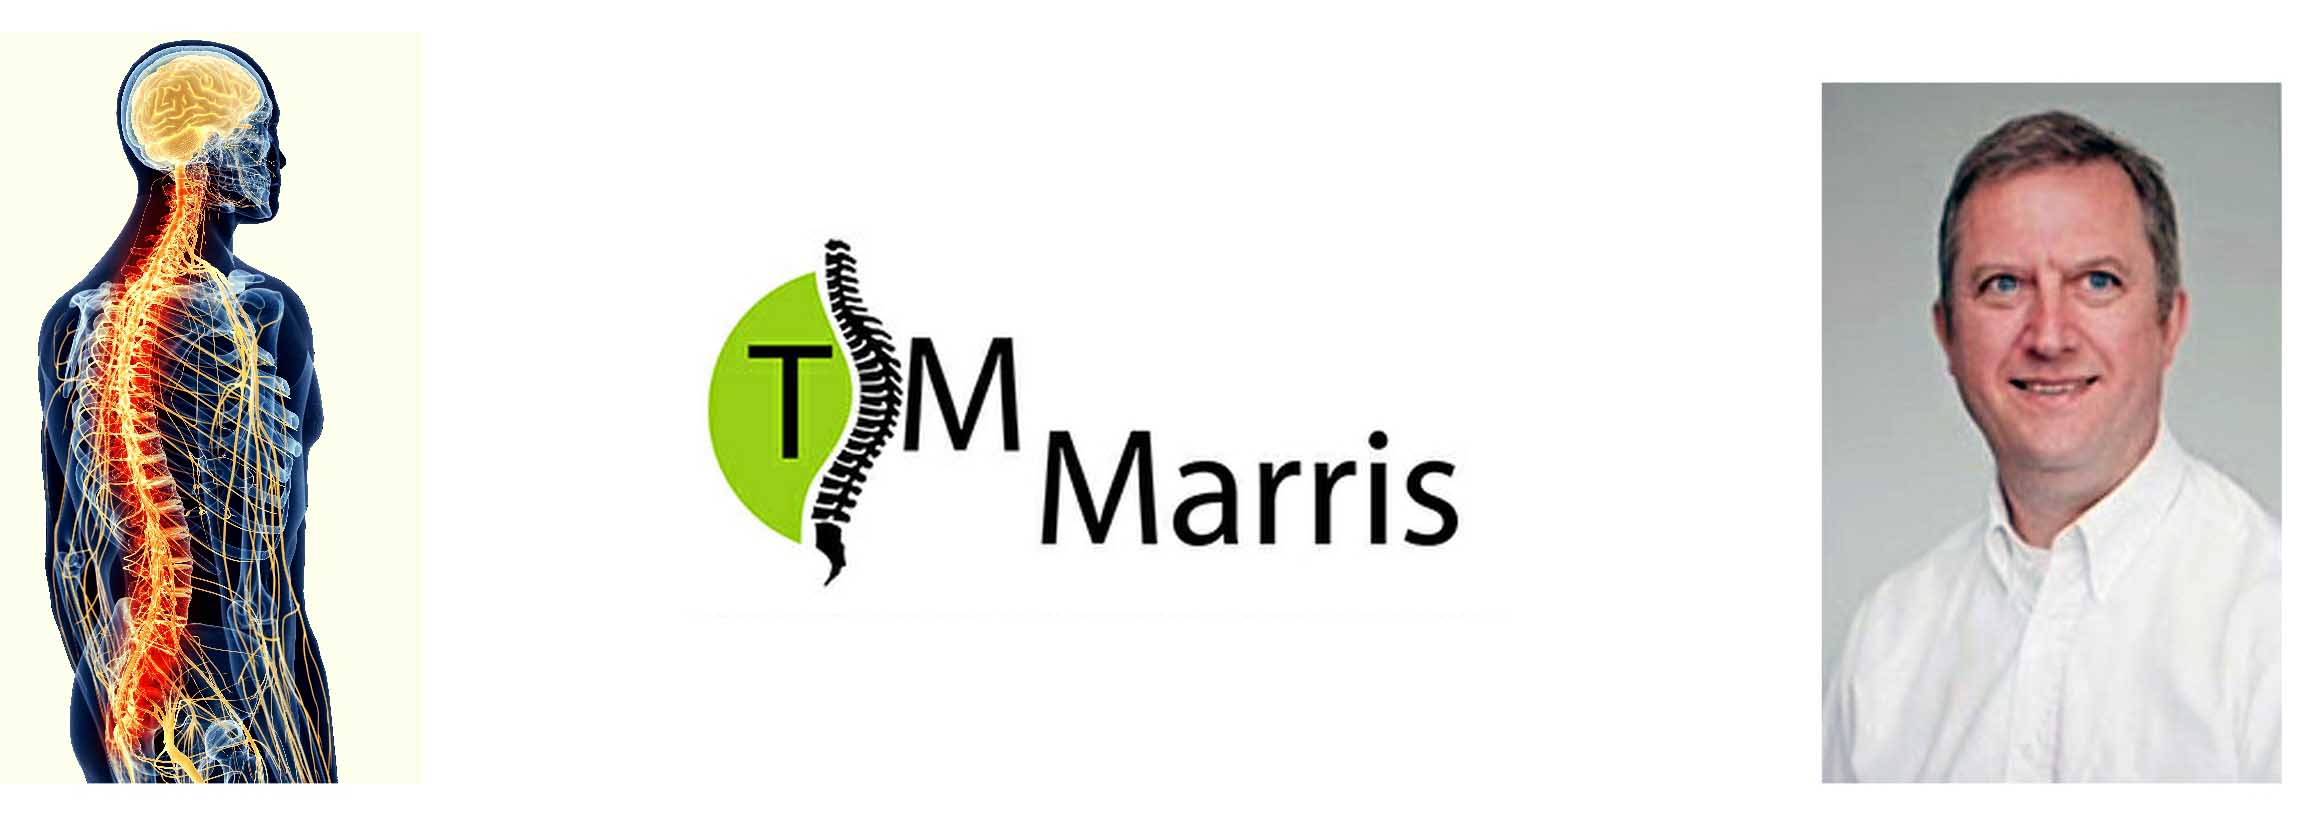 Tim Marris, Osteopath, NLP, Neuro Linguistic Programming, Ashford, Kent